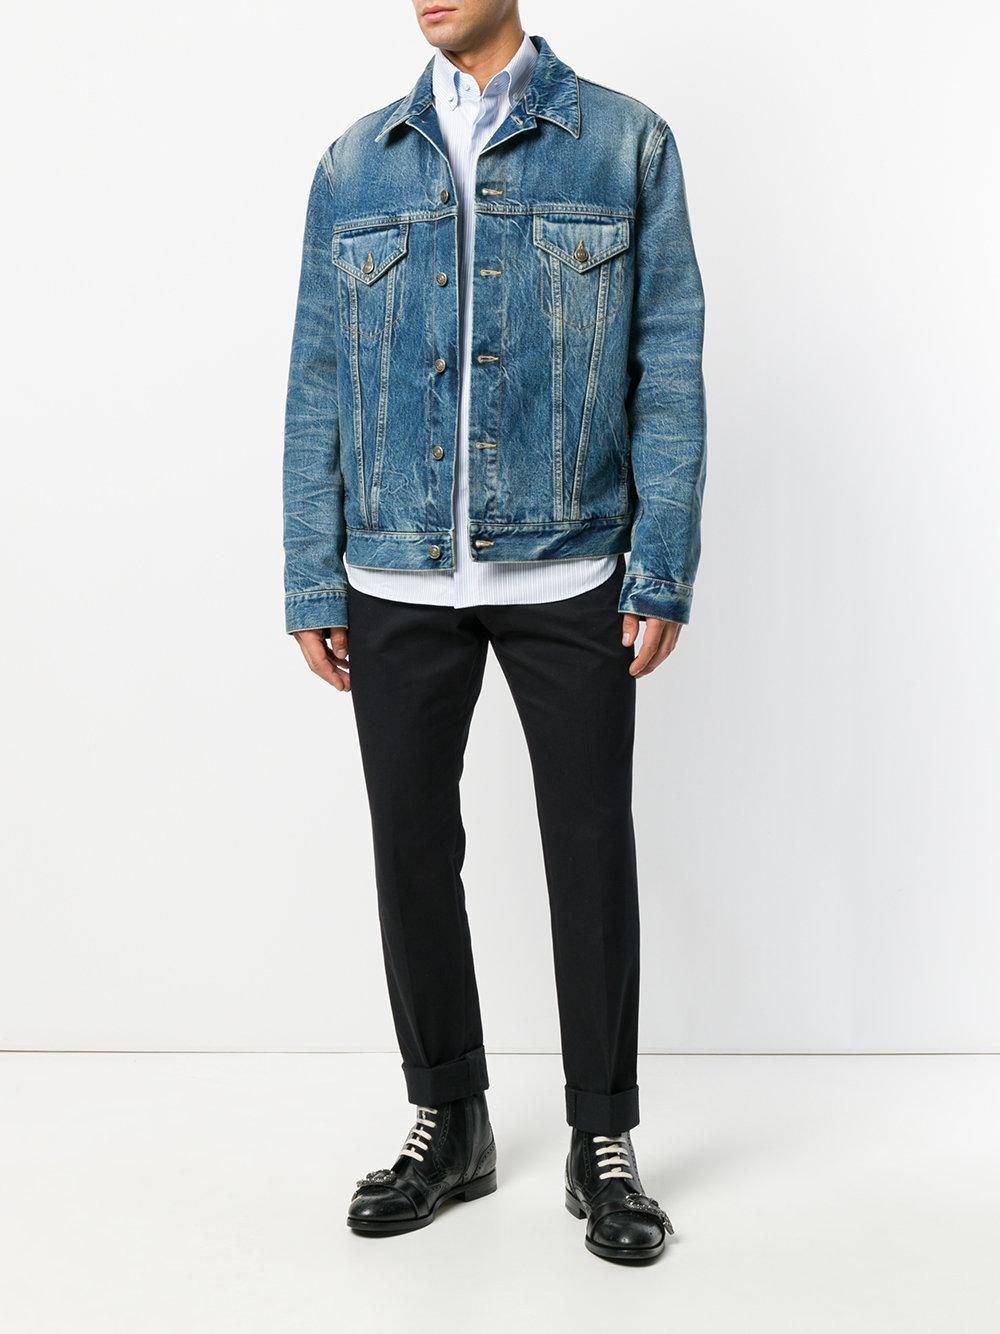 6f810489ce58 Lyst - Gucci Embroidered Denim Jacket in Blue for Men